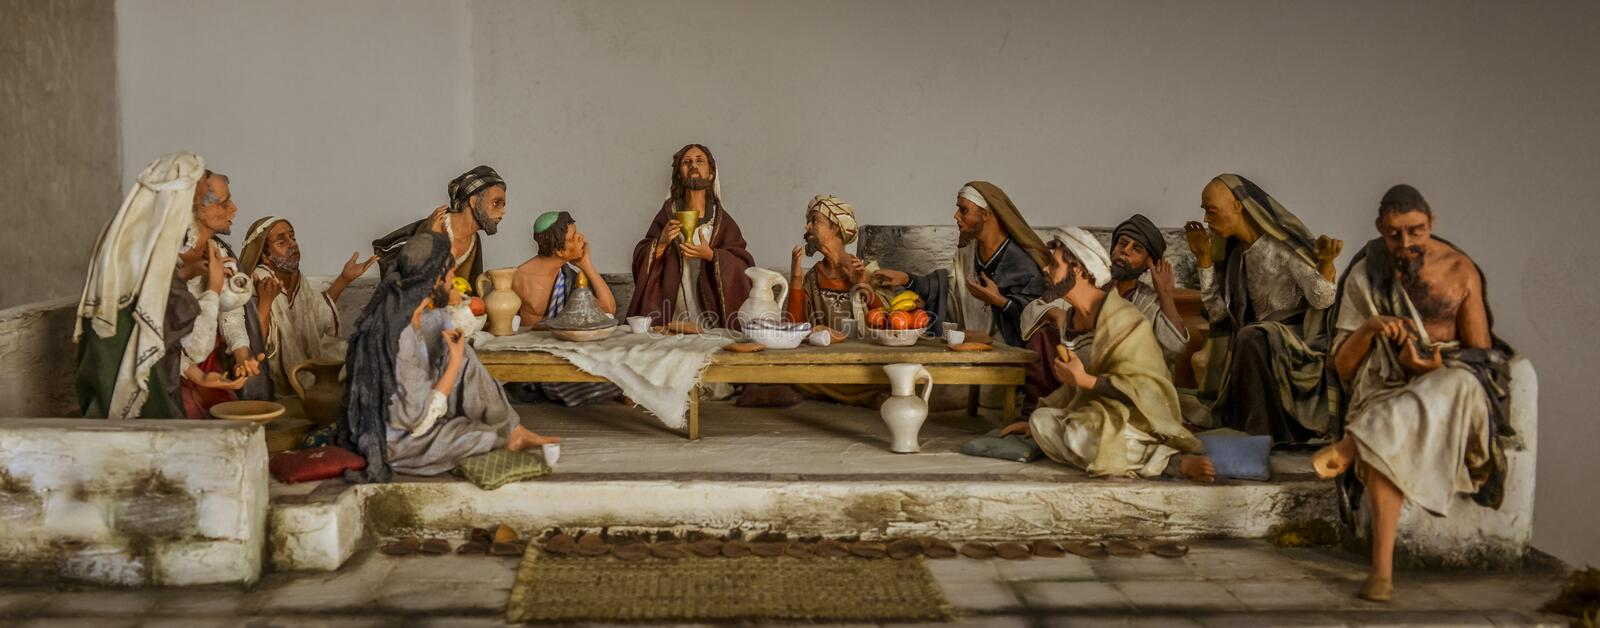 The last supper. Sculptures of jesus and the twelve apostles at the last supper stock photo